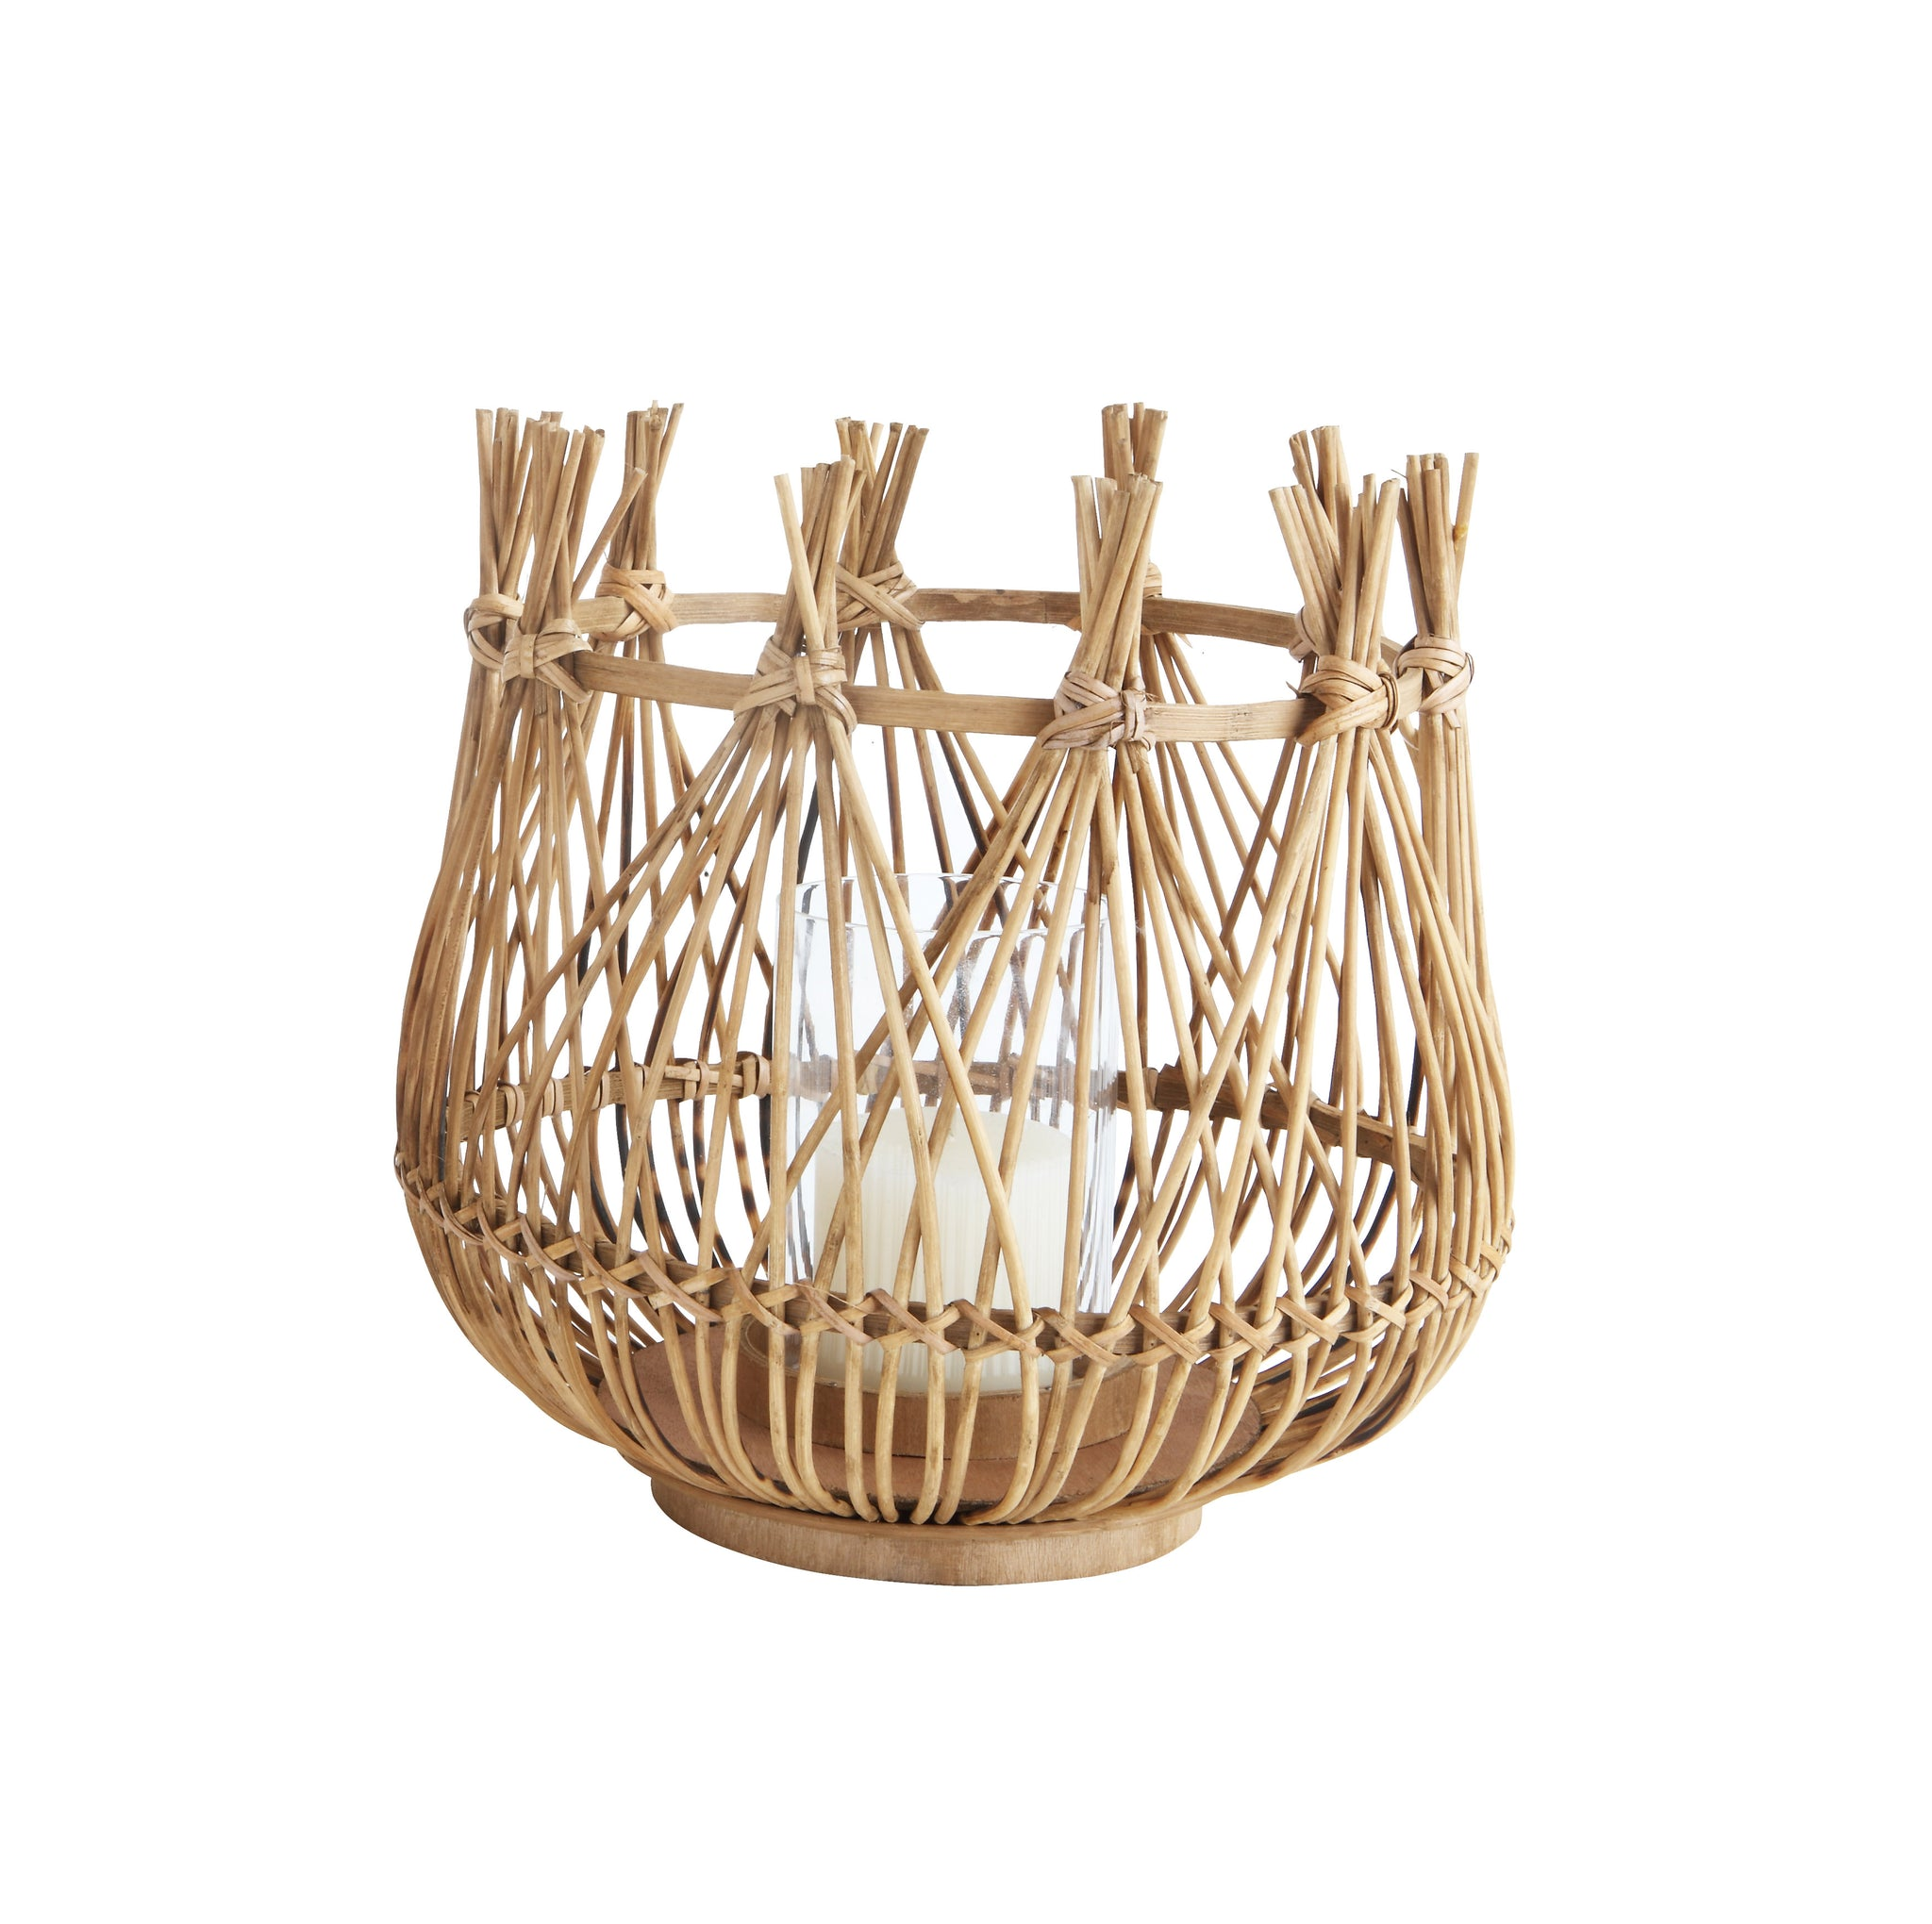 Small Round Bamboo Candleholder with Glass Insert